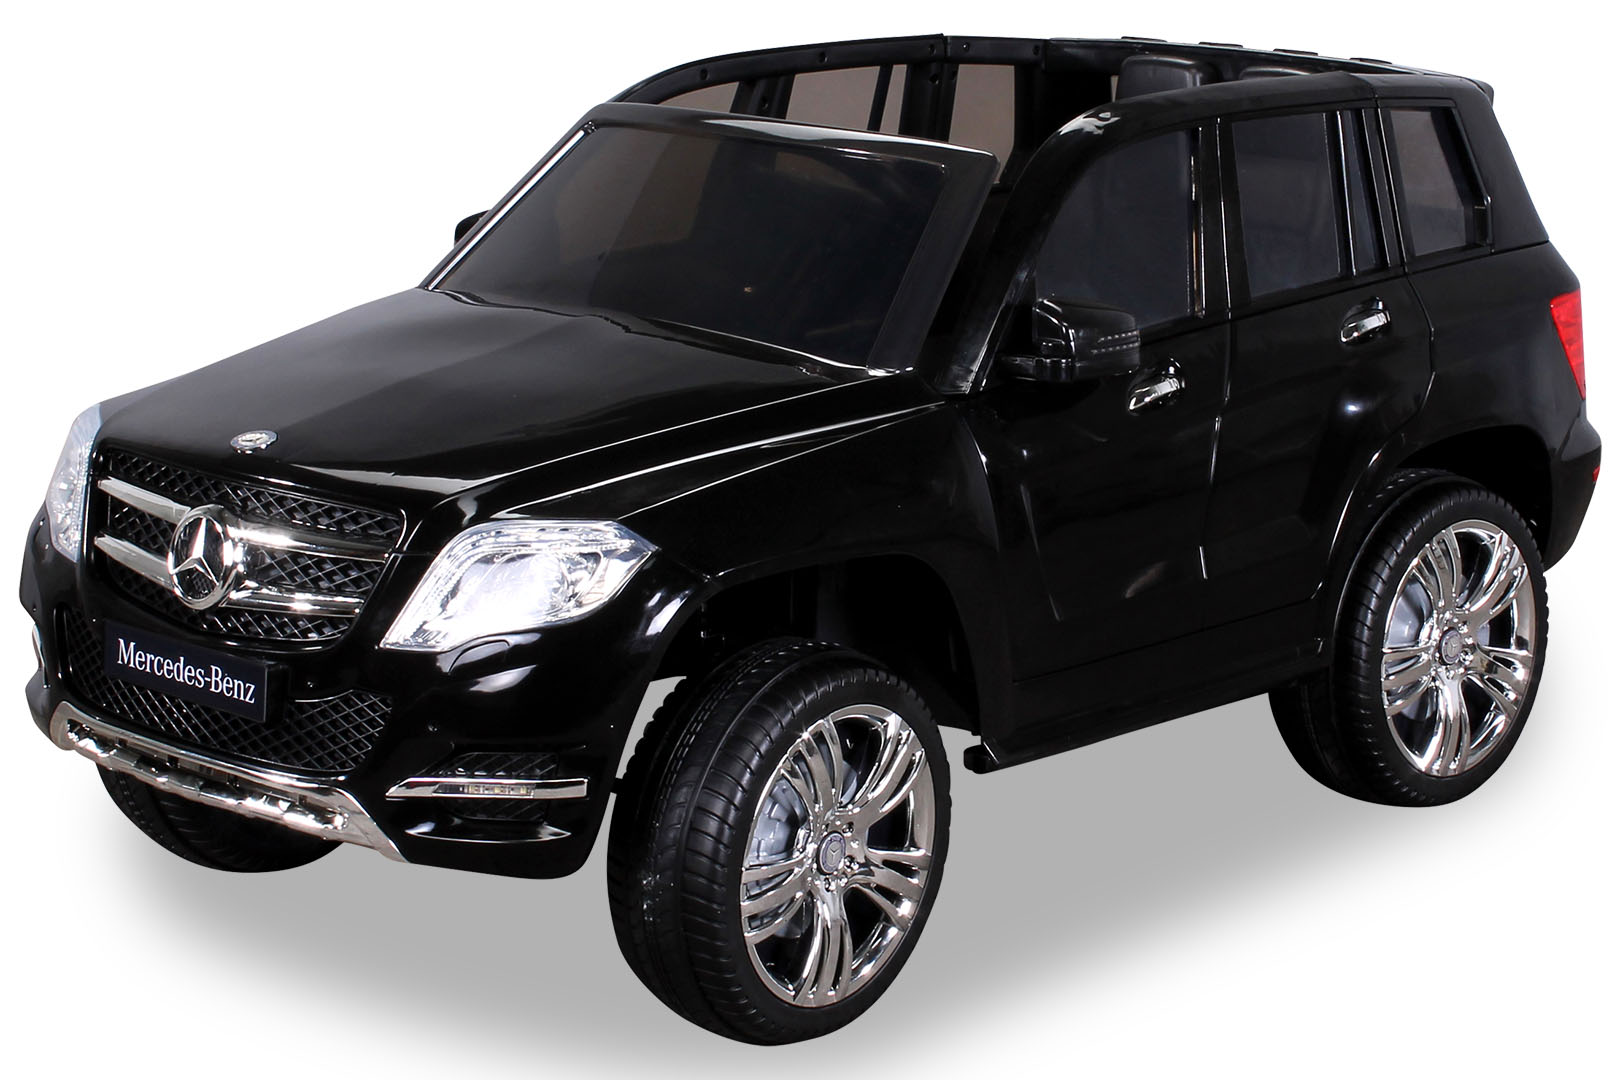 kinder elektroauto suv mercedes benz glk 300 lizenziert 2x. Black Bedroom Furniture Sets. Home Design Ideas